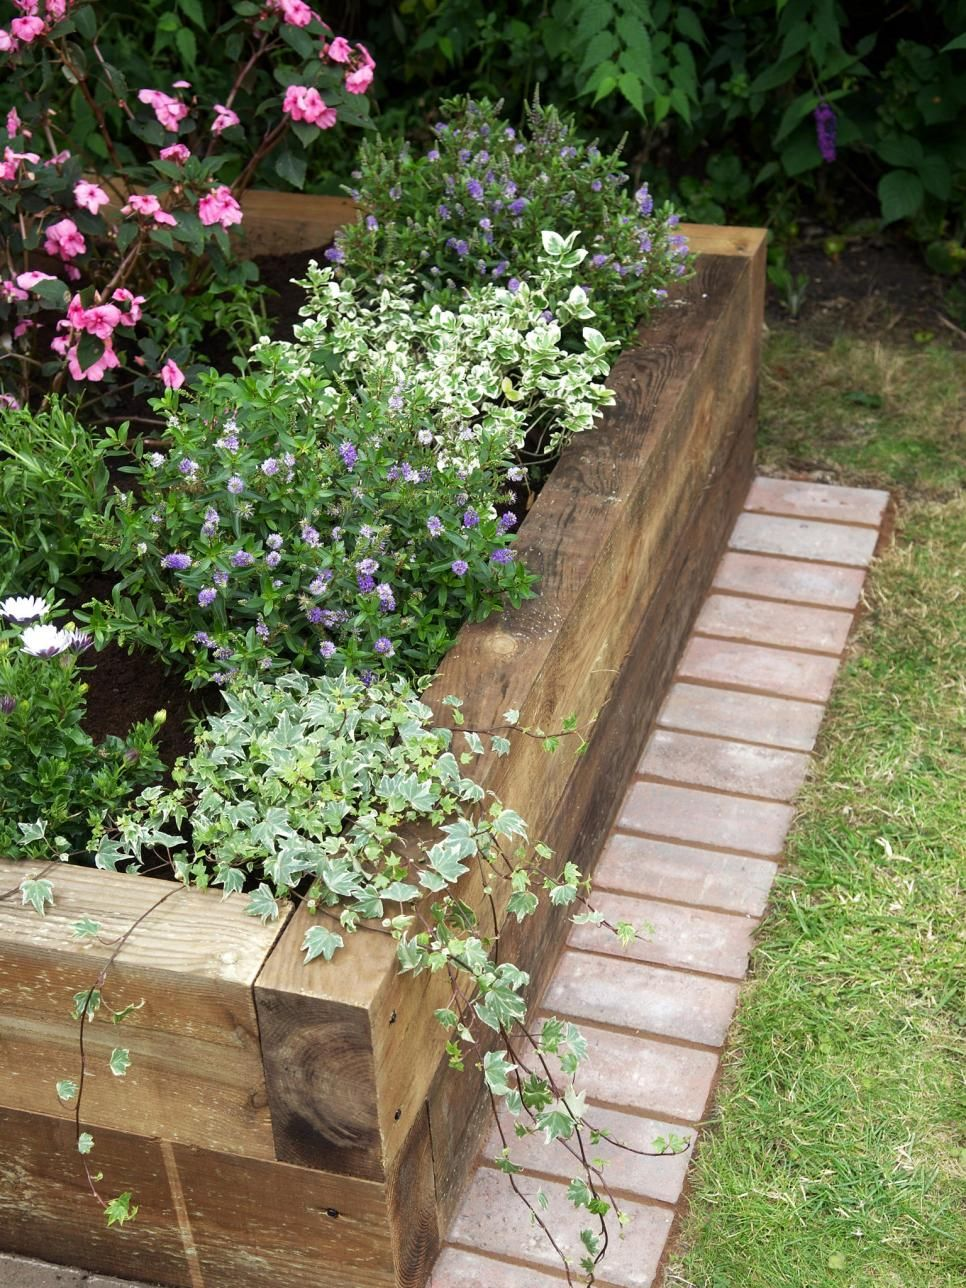 15 Raised Garden Bed Ideas | Gardens, Raised bed and Yard ideas